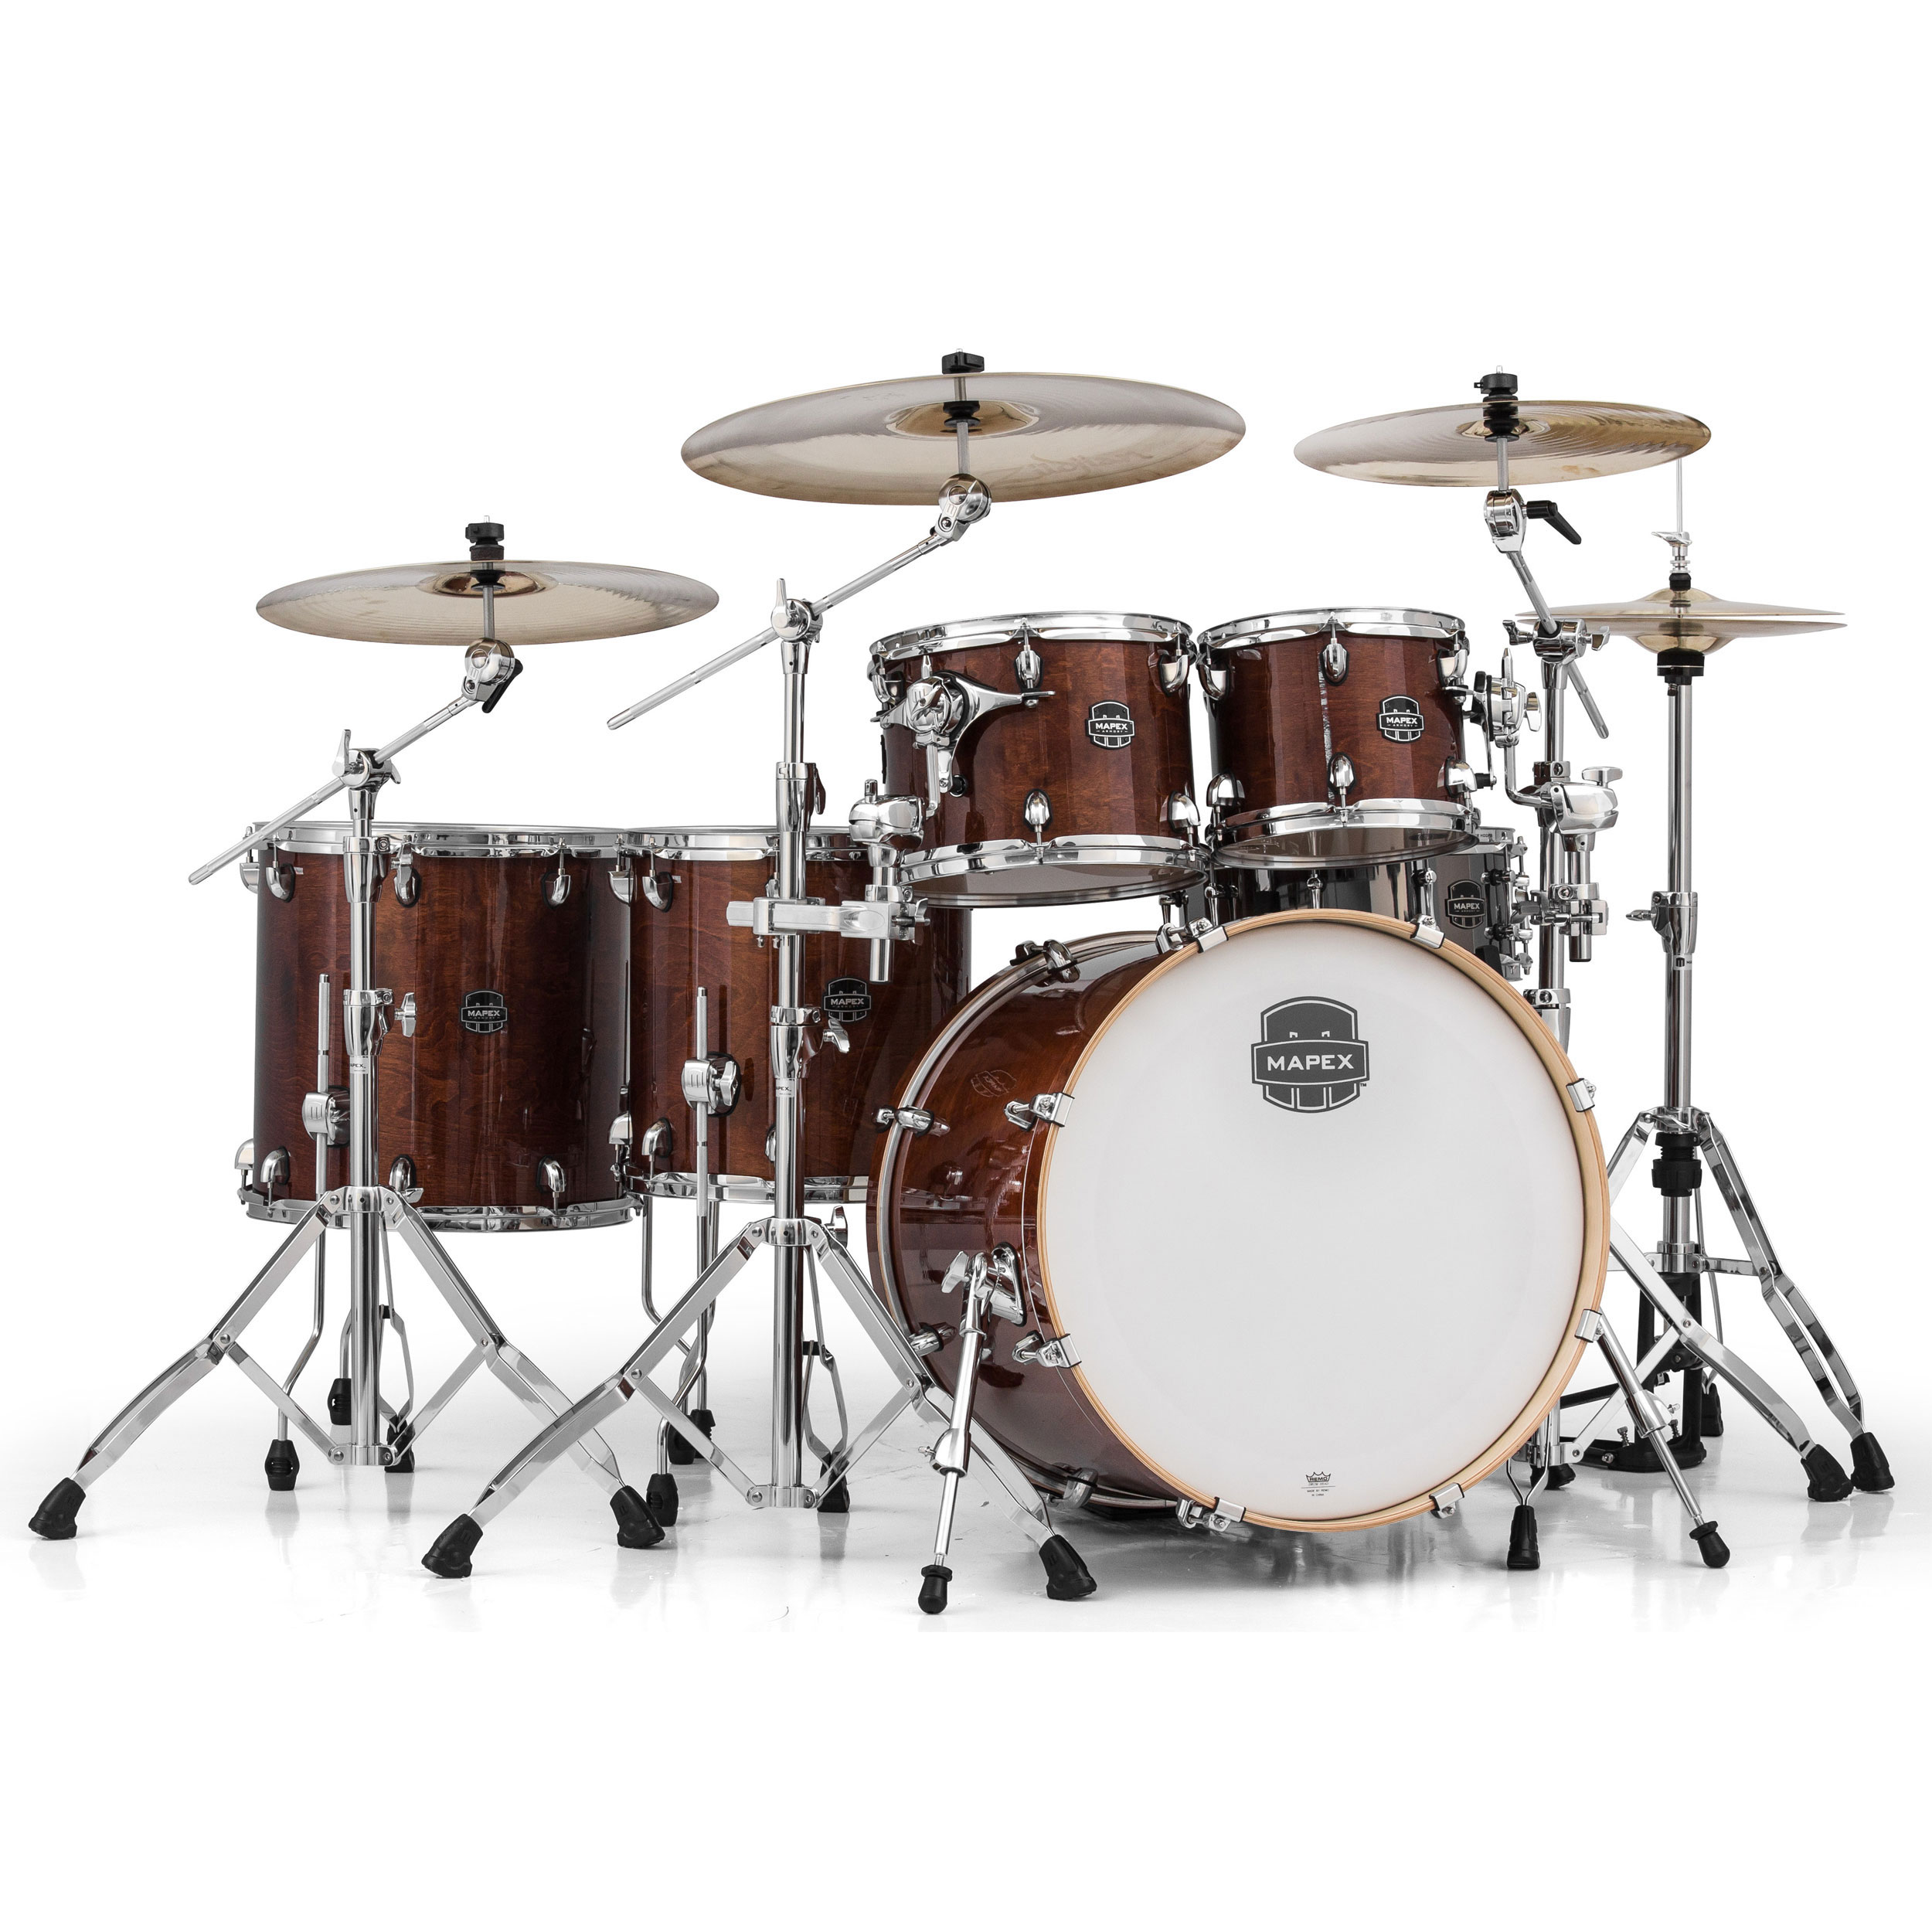 mapex armory 6 piece studioease drum set shell pack 22 bass 10 12 14 16 toms 14 snare. Black Bedroom Furniture Sets. Home Design Ideas